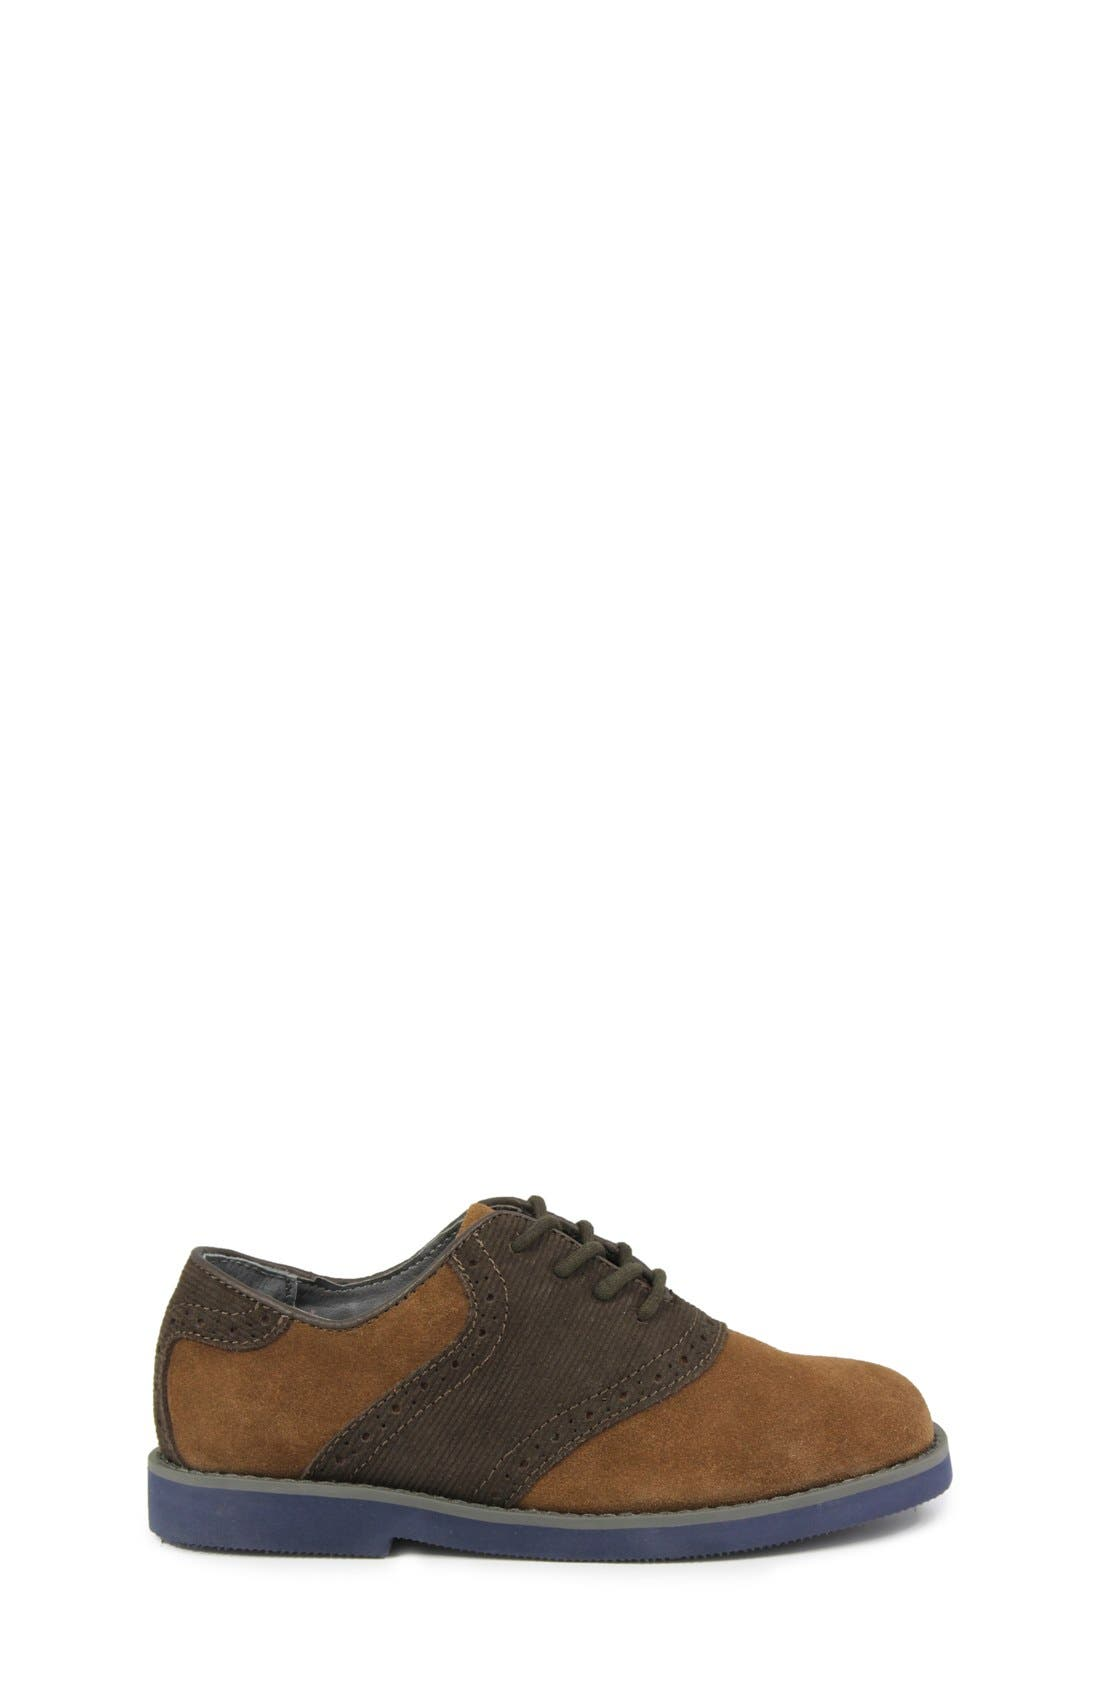 Alternate Image 3  - Florsheim 'Kennett' Oxford (Toddler, Little Kid & Big Kid)